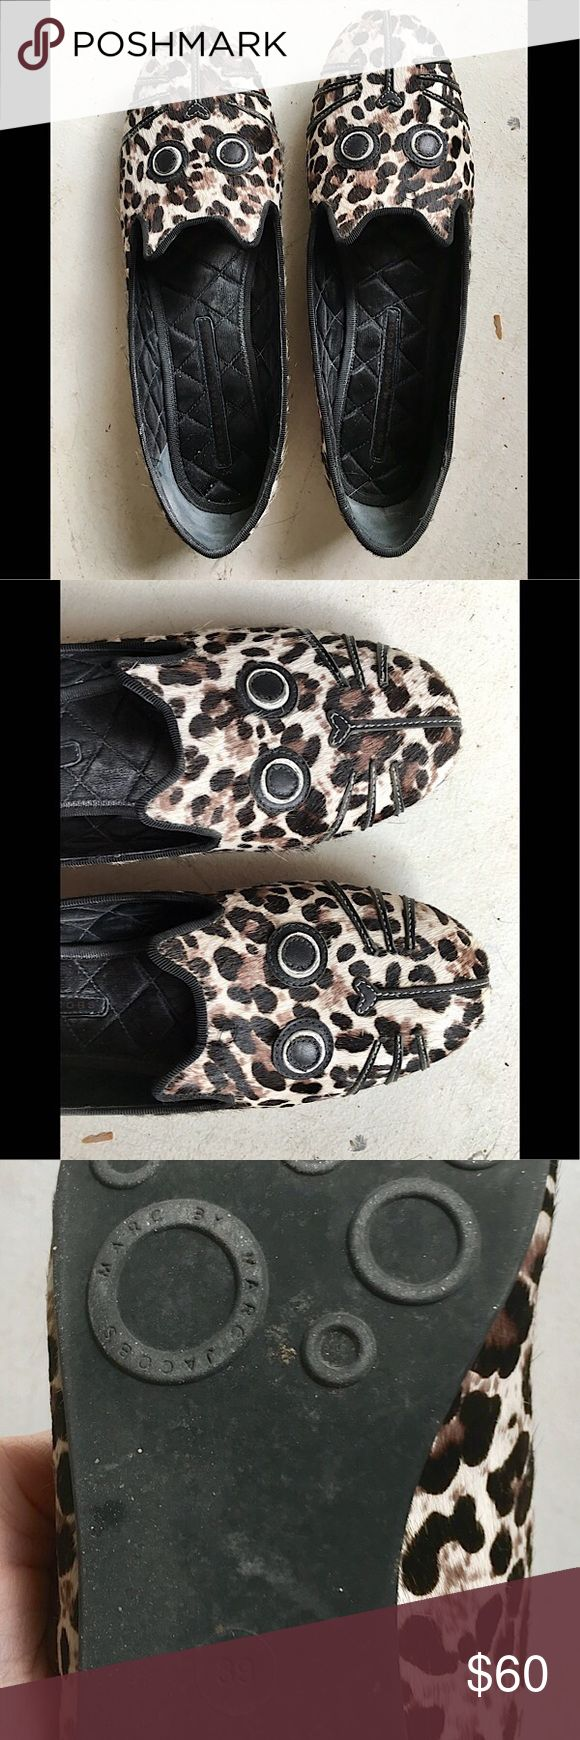 Marc by Marc Jacobs Cat Flats Size 9 or Size 39 Marc by Marc Jacobs Cat Flats. Size runs slightly small and the fabric on the outside feels like fur. Marc By Marc Jacobs Shoes Flats & Loafers